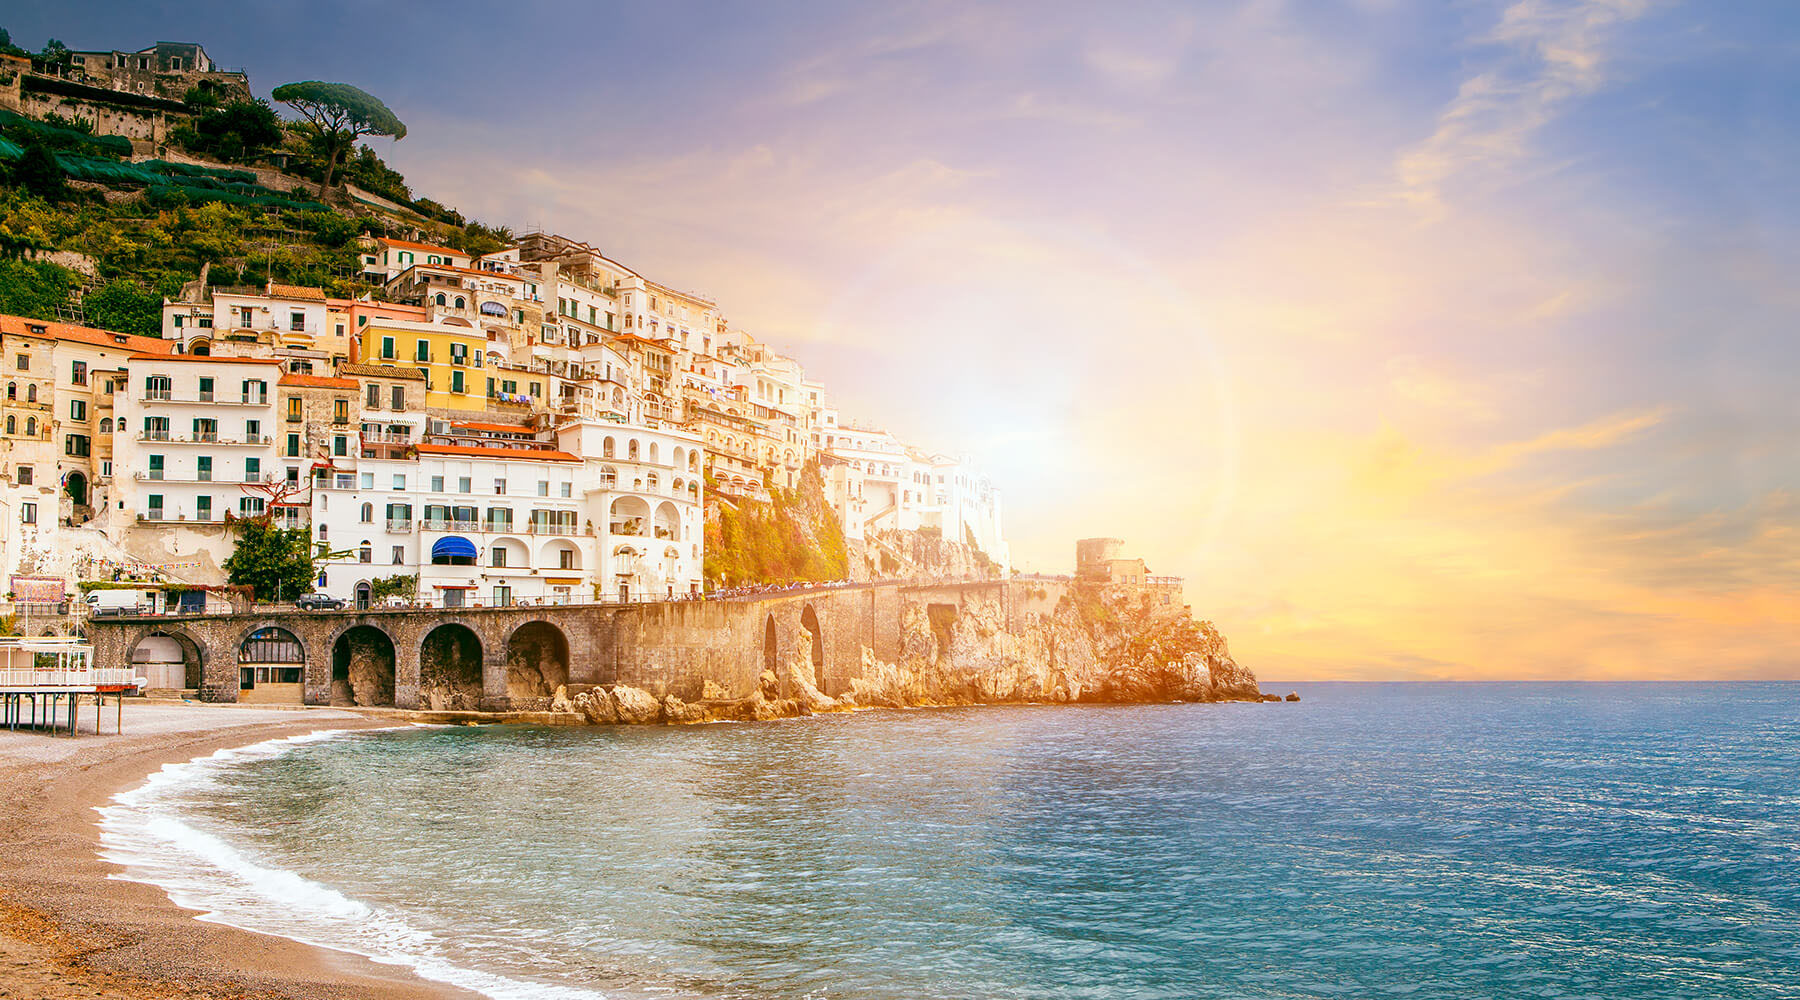 10-NIGHT AMALFI & DALMATIAN COASTS VOYAGE